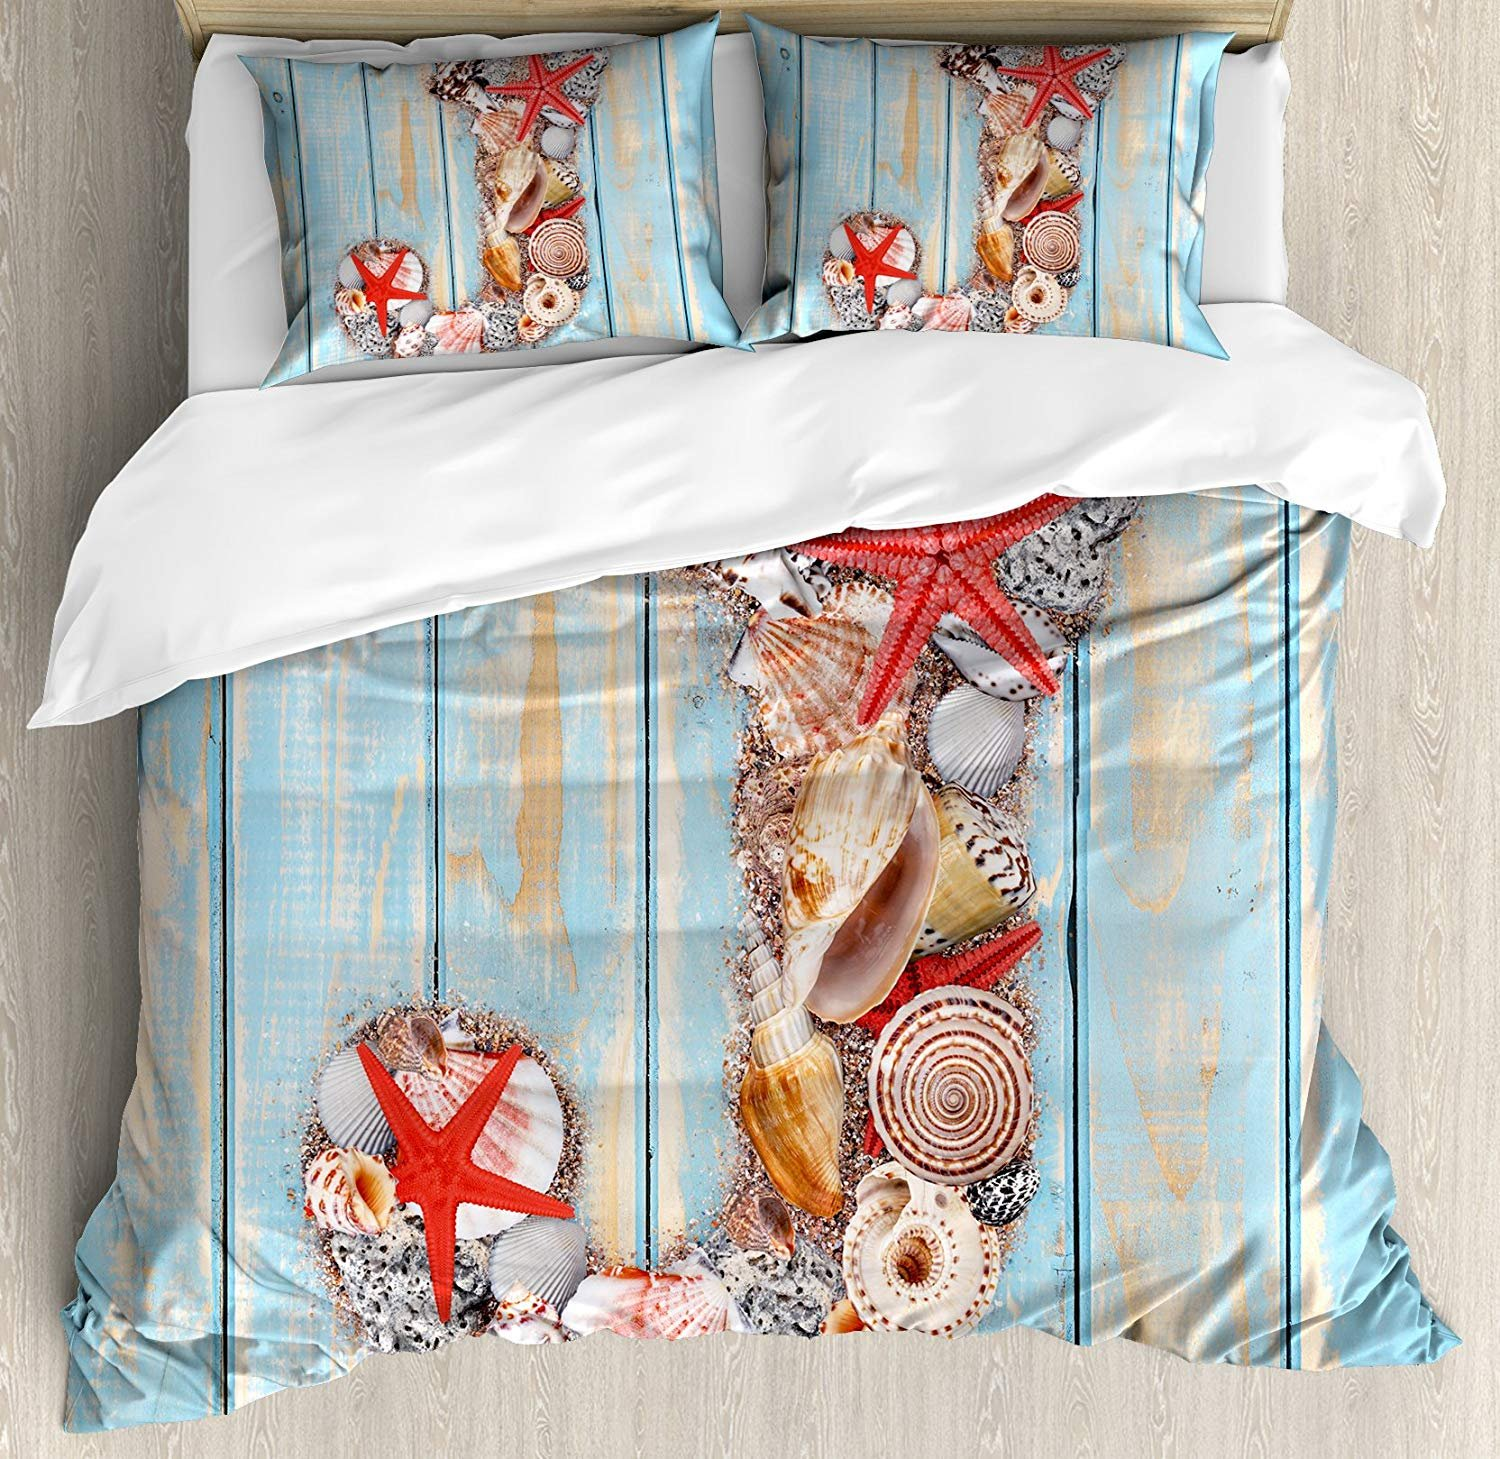 Family Decor Letter J Twin Duvet Cover Sets 4 Piece Bedding Set Bedspread with 2 Pillow Sham, Flat Sheet for Adult/Kids/Teens, Summer Holiday on Tropical Beach Theme J Rustic Old Wood Planks